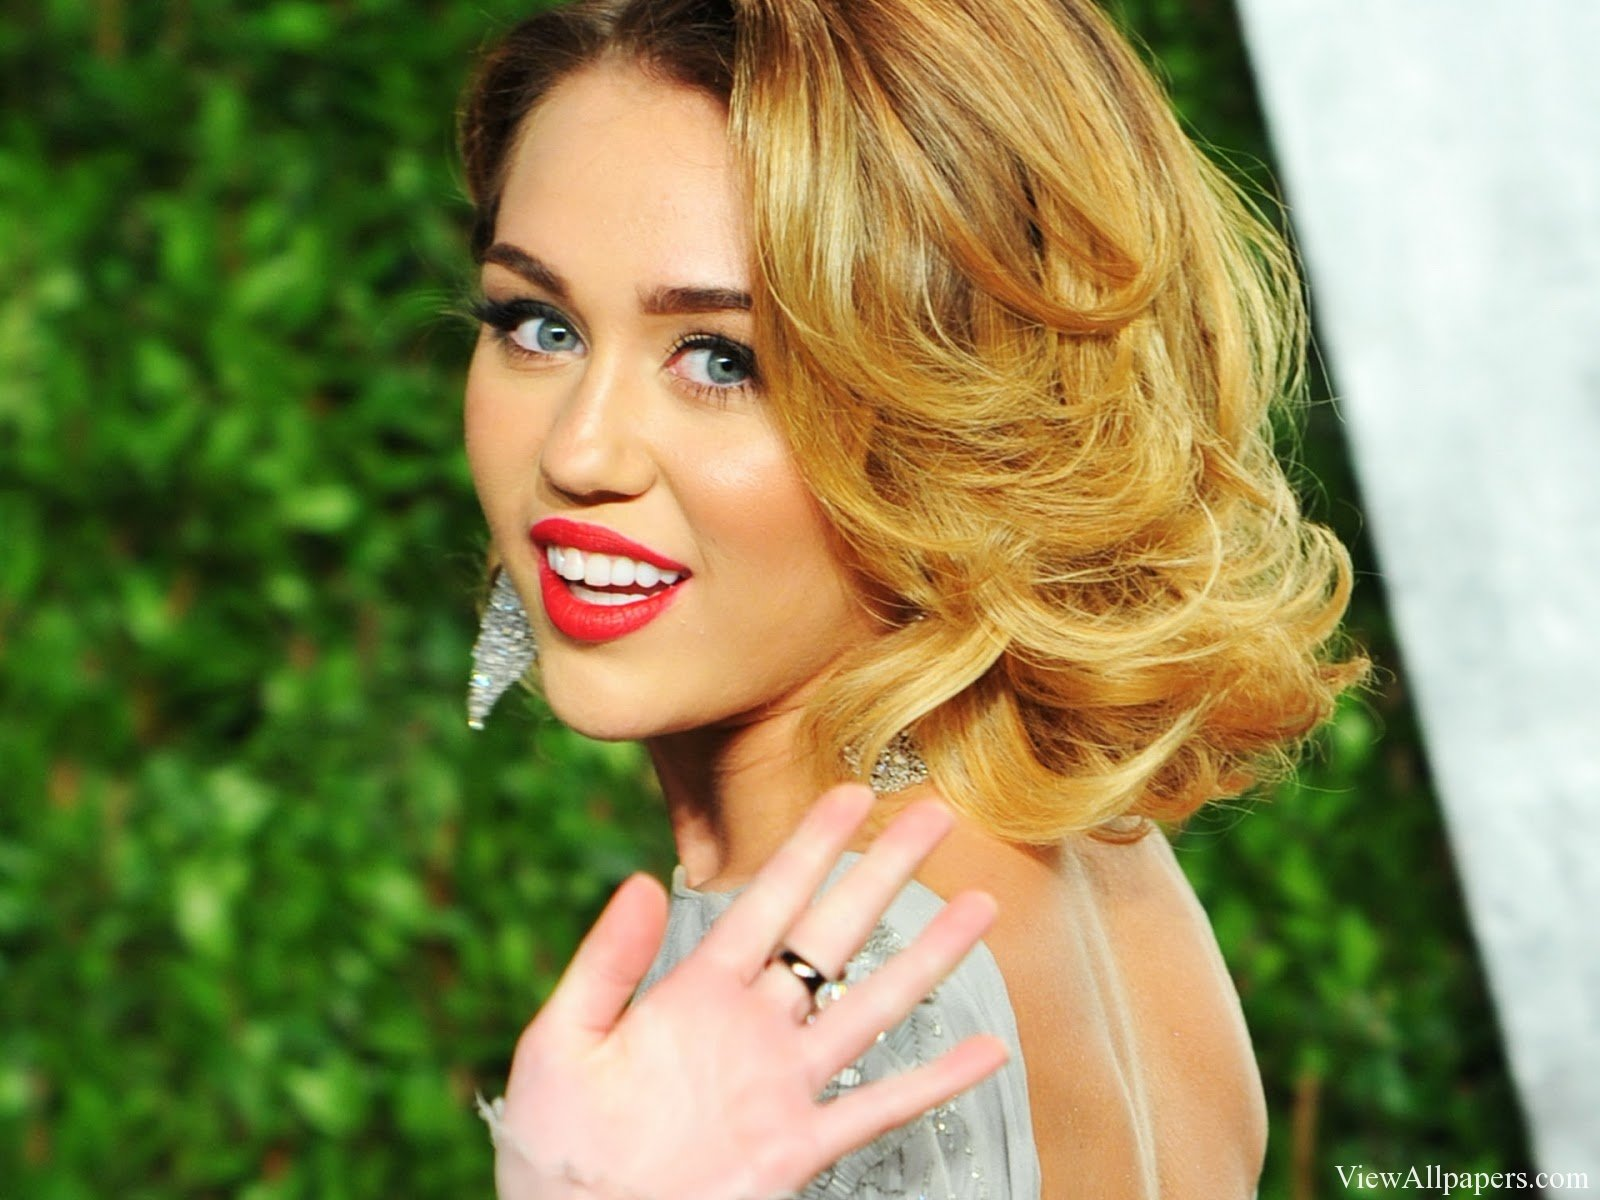 Miley Cyrus 2015 High Resolution Wallpaper download Miley Cyrus 1600x1200